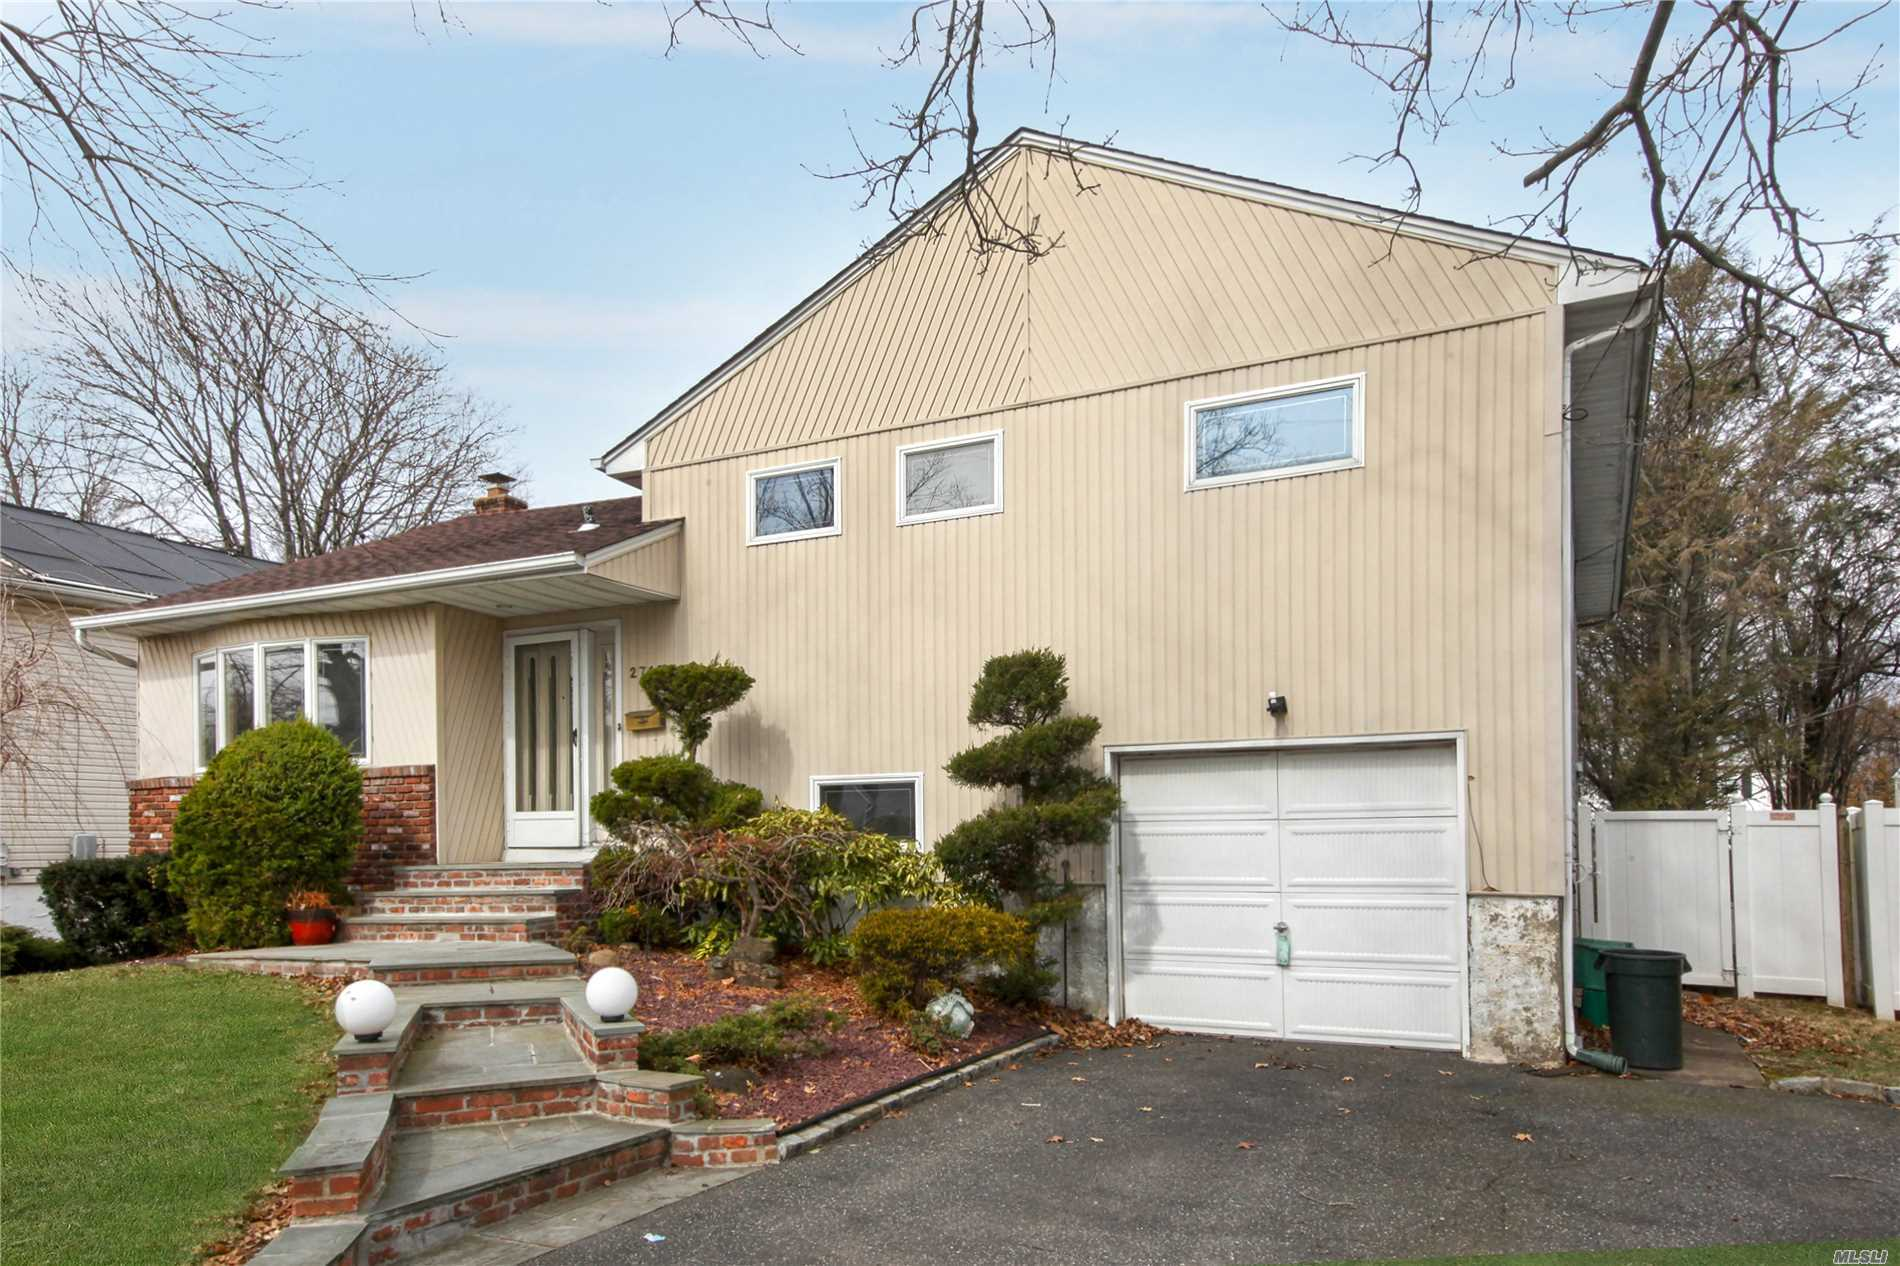 2719 Elm Dr - N. Bellmore, New York